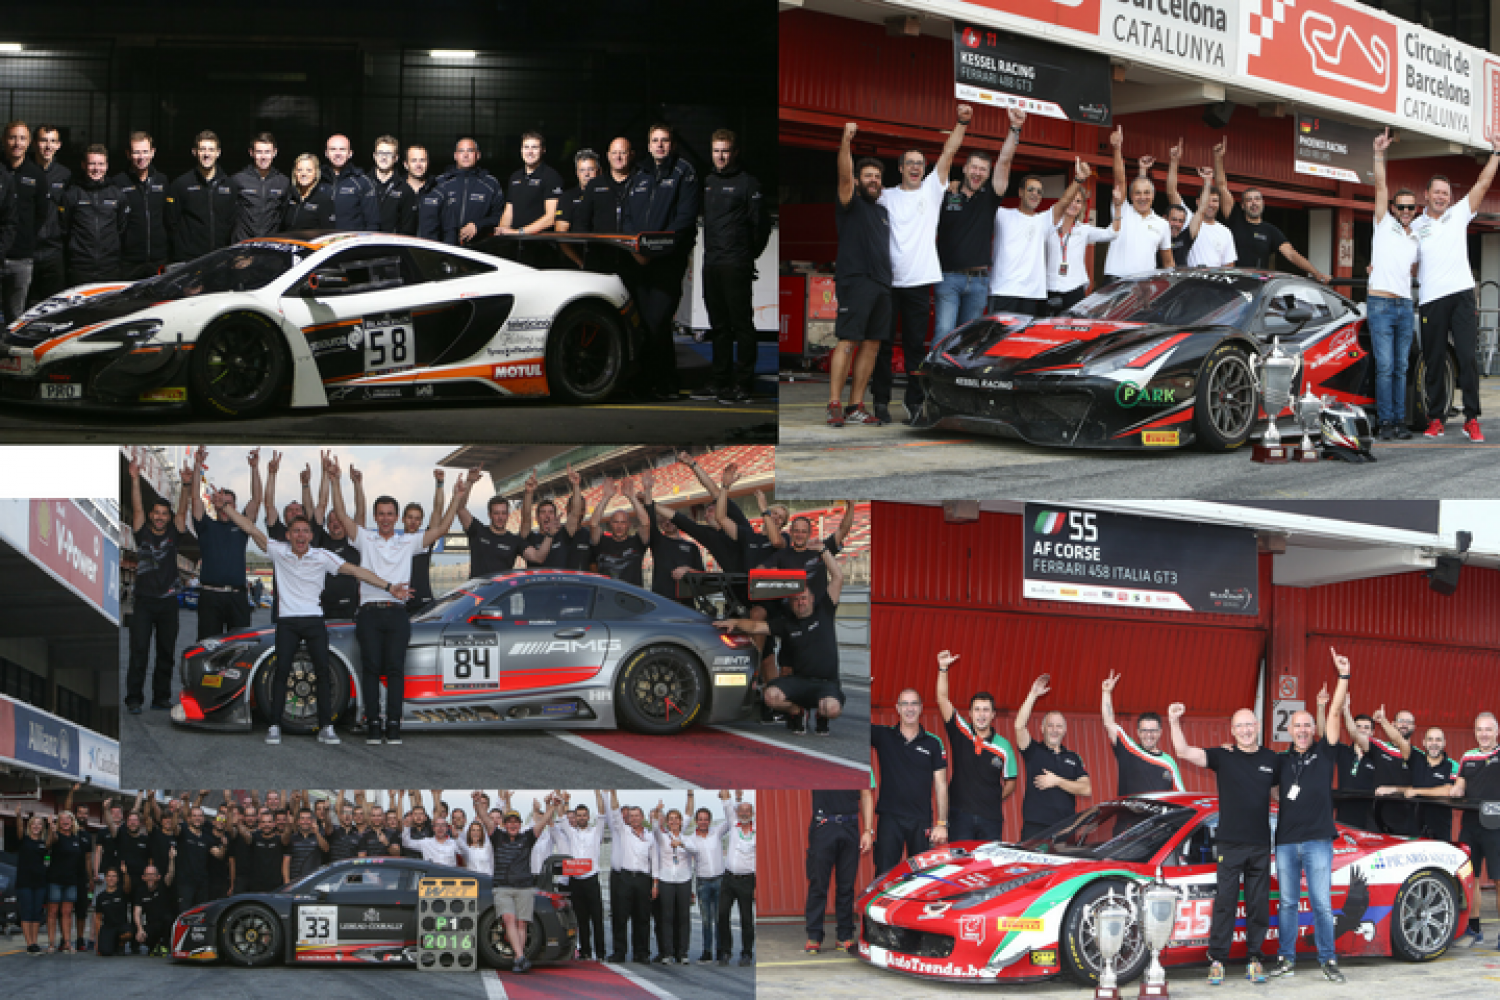 Blancpain GT Series teams proud to collect coveted trophies